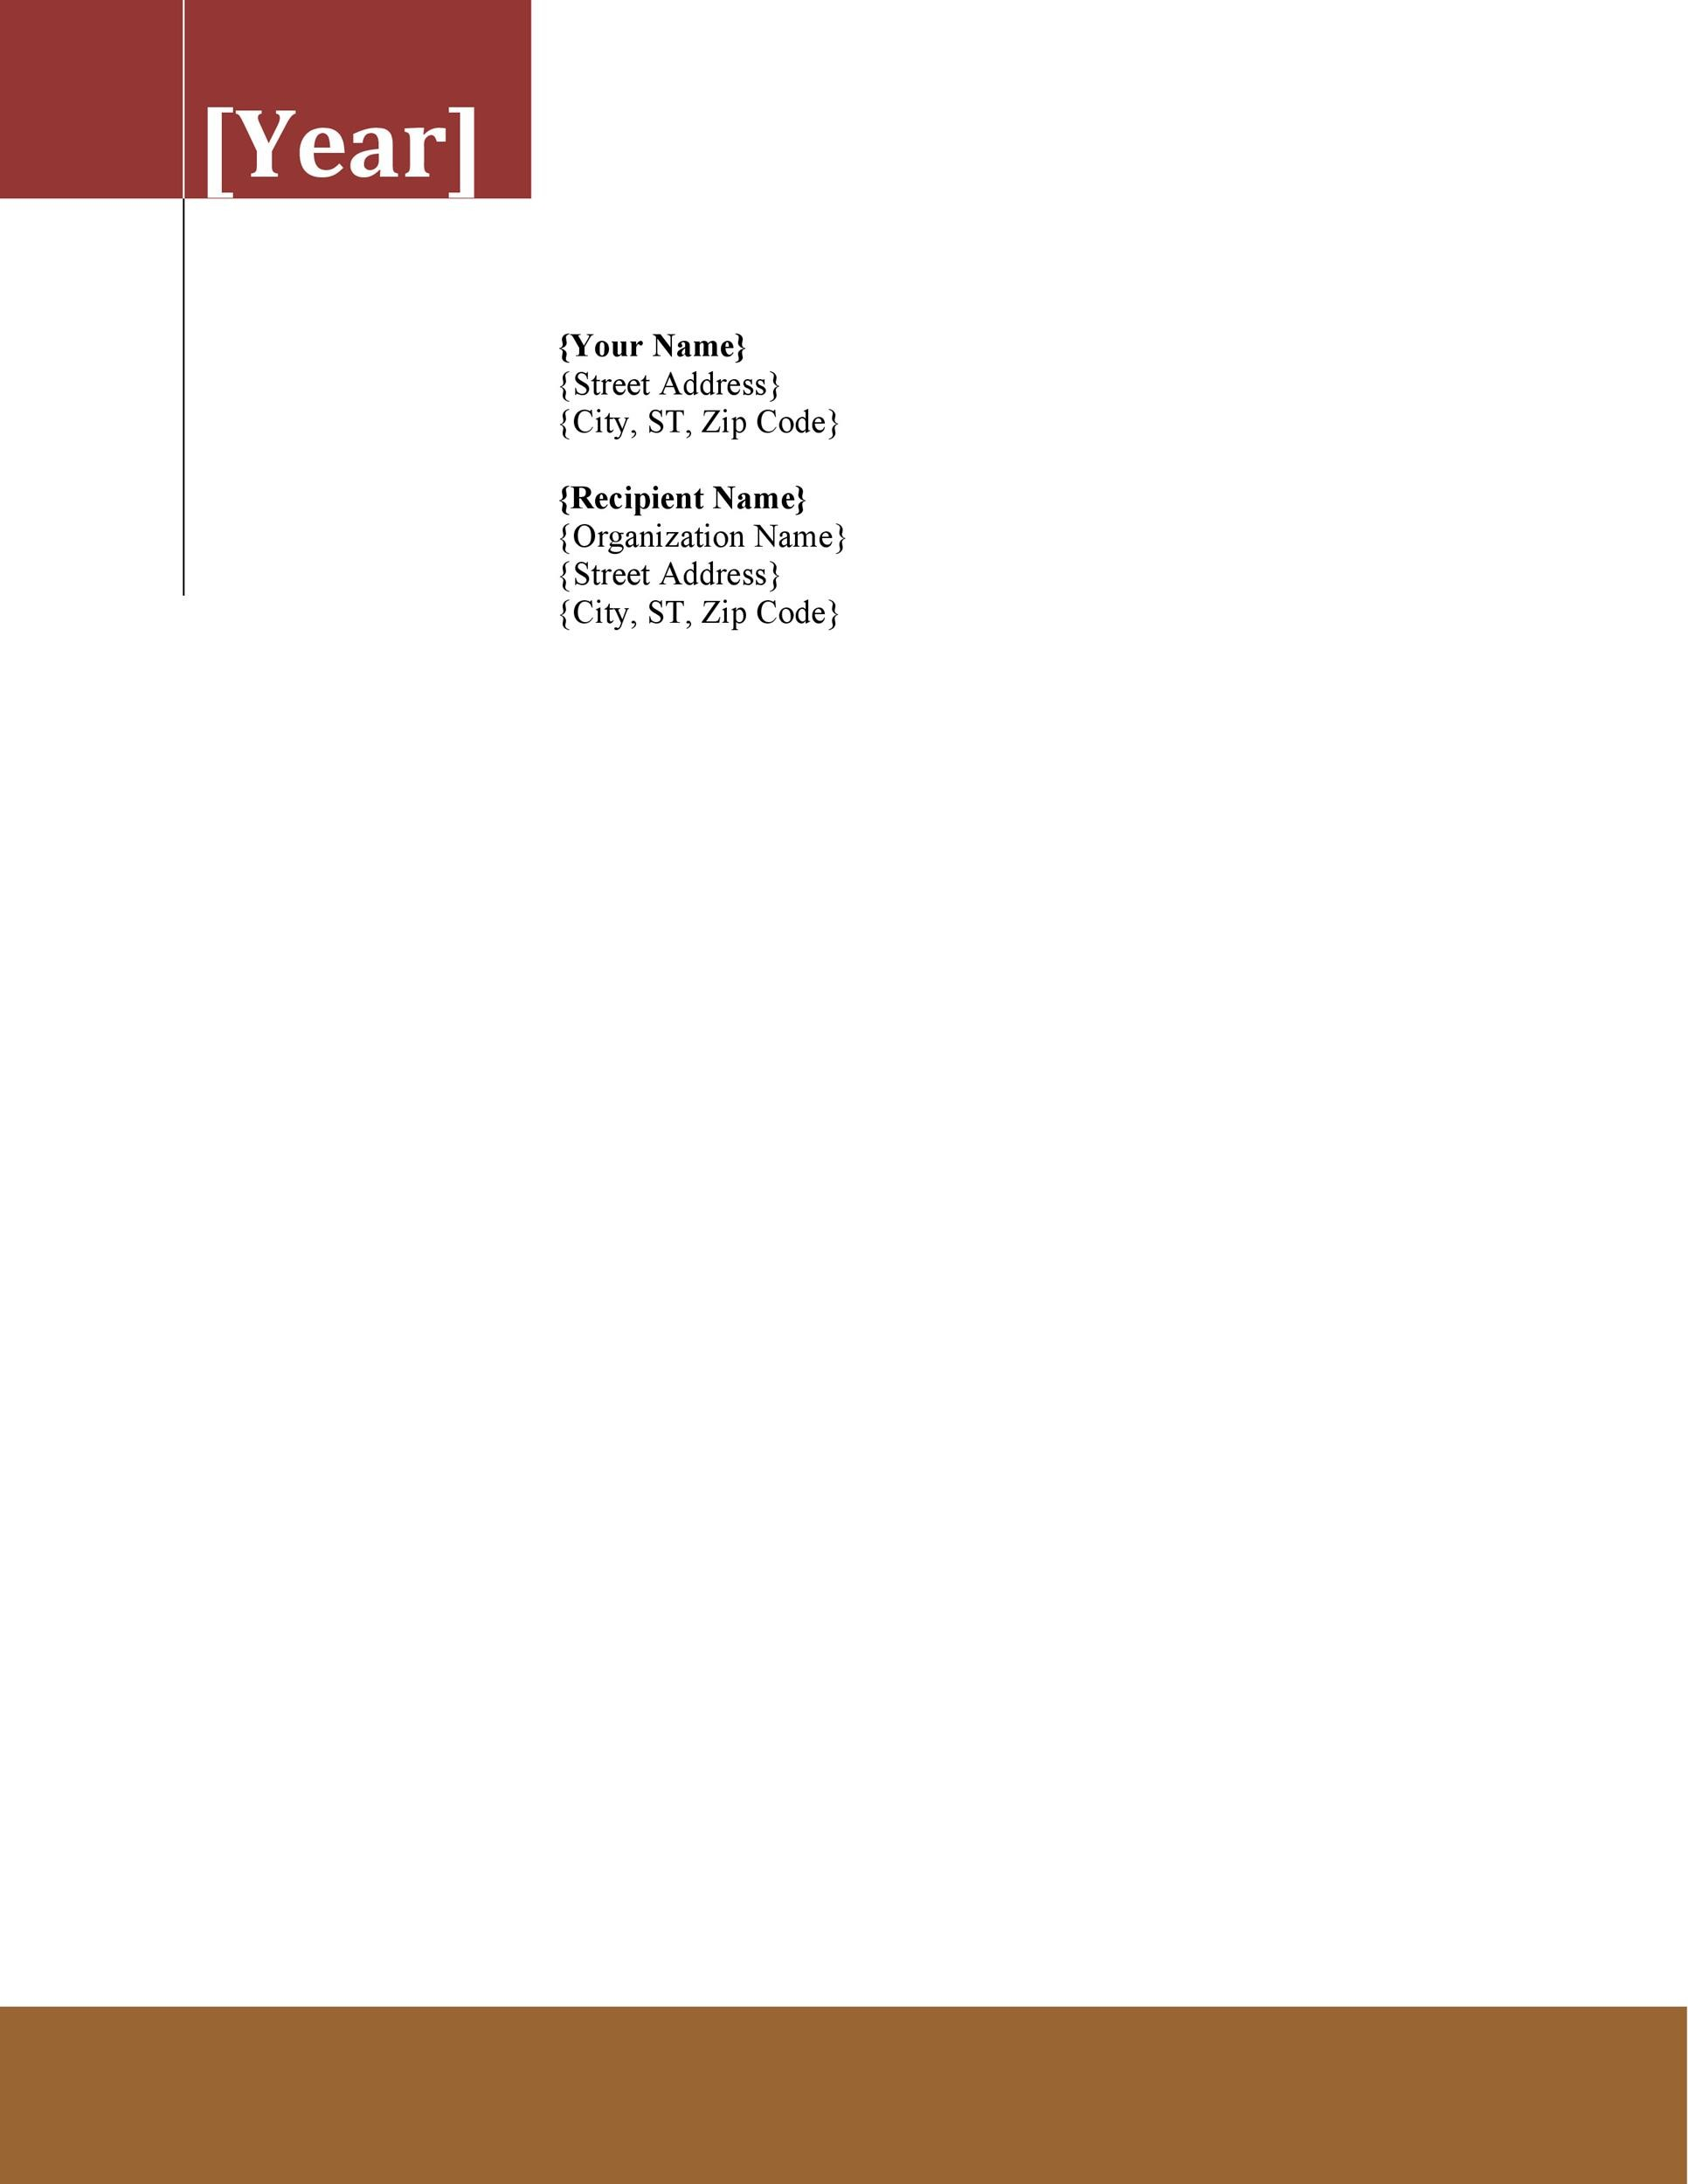 Free Letterhead Template 42  Free Letterhead Templates Download